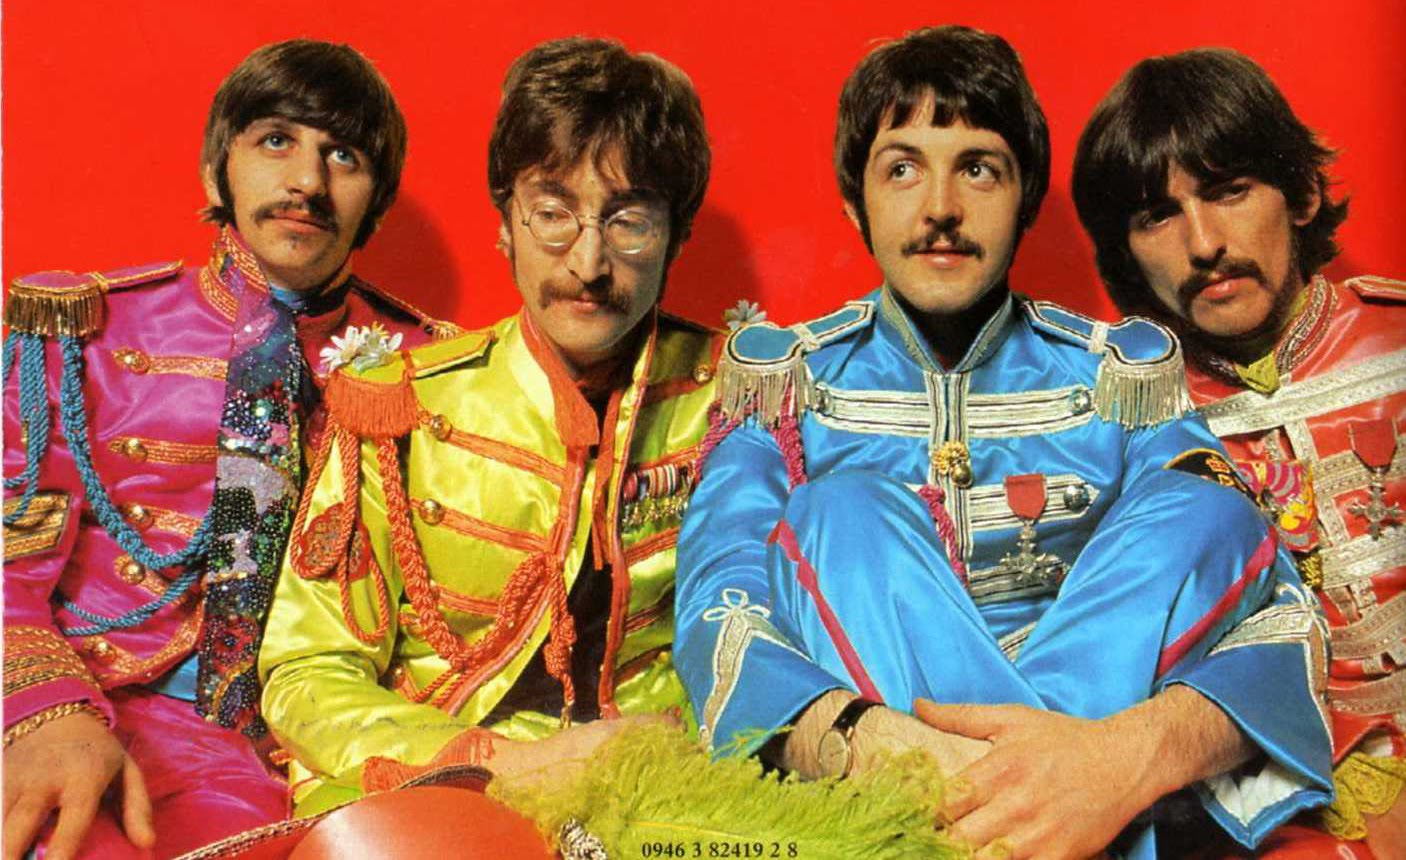 50 datos alrededor del Sgt. Pepper's Lonely Hearts Club Band